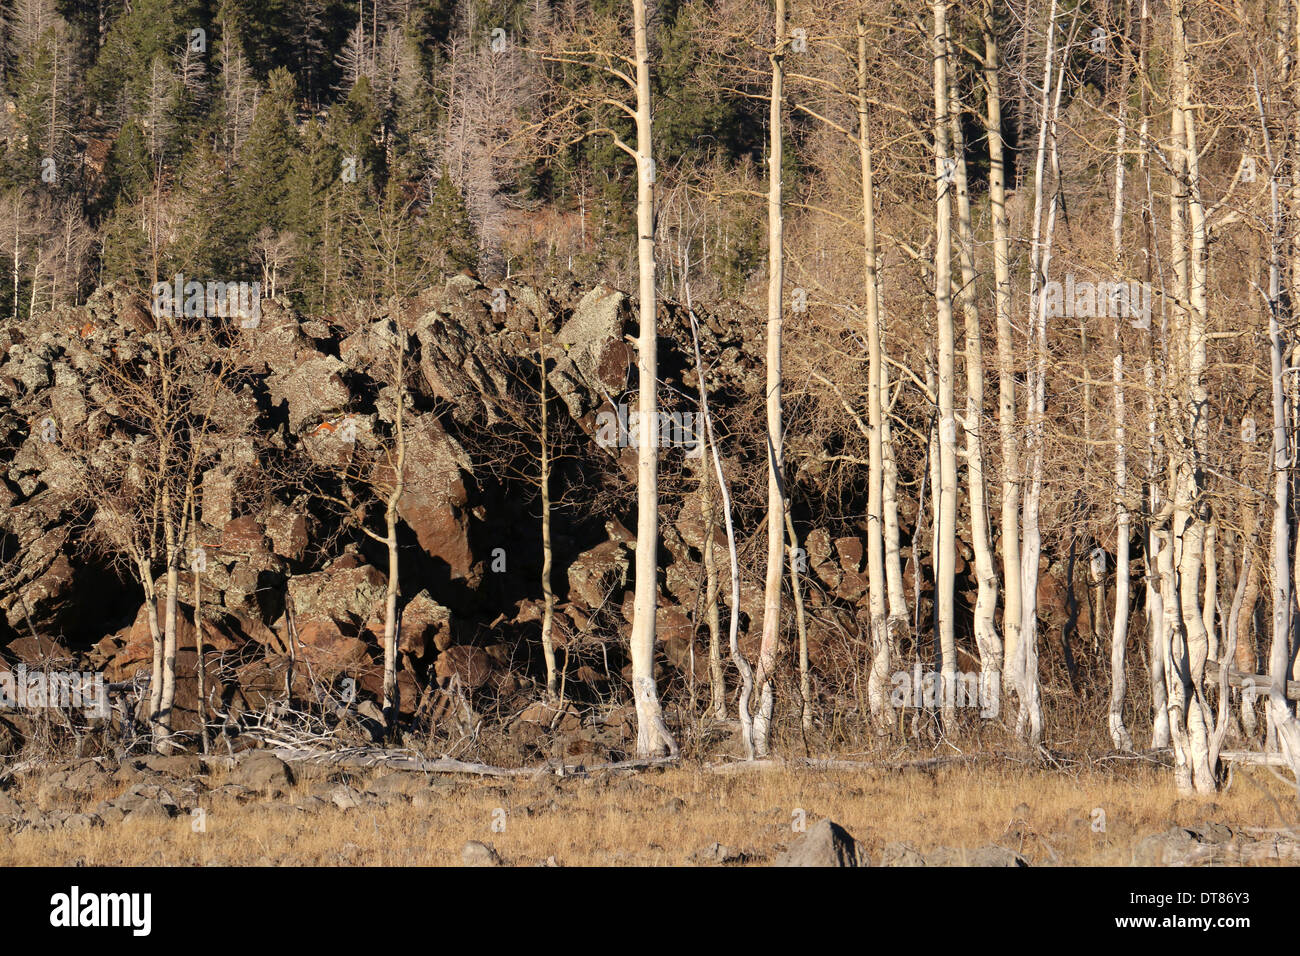 trees on ahah basaltic flows lava Markagunt Plateau volcanic field Utah volcano person people hike family - Stock Image